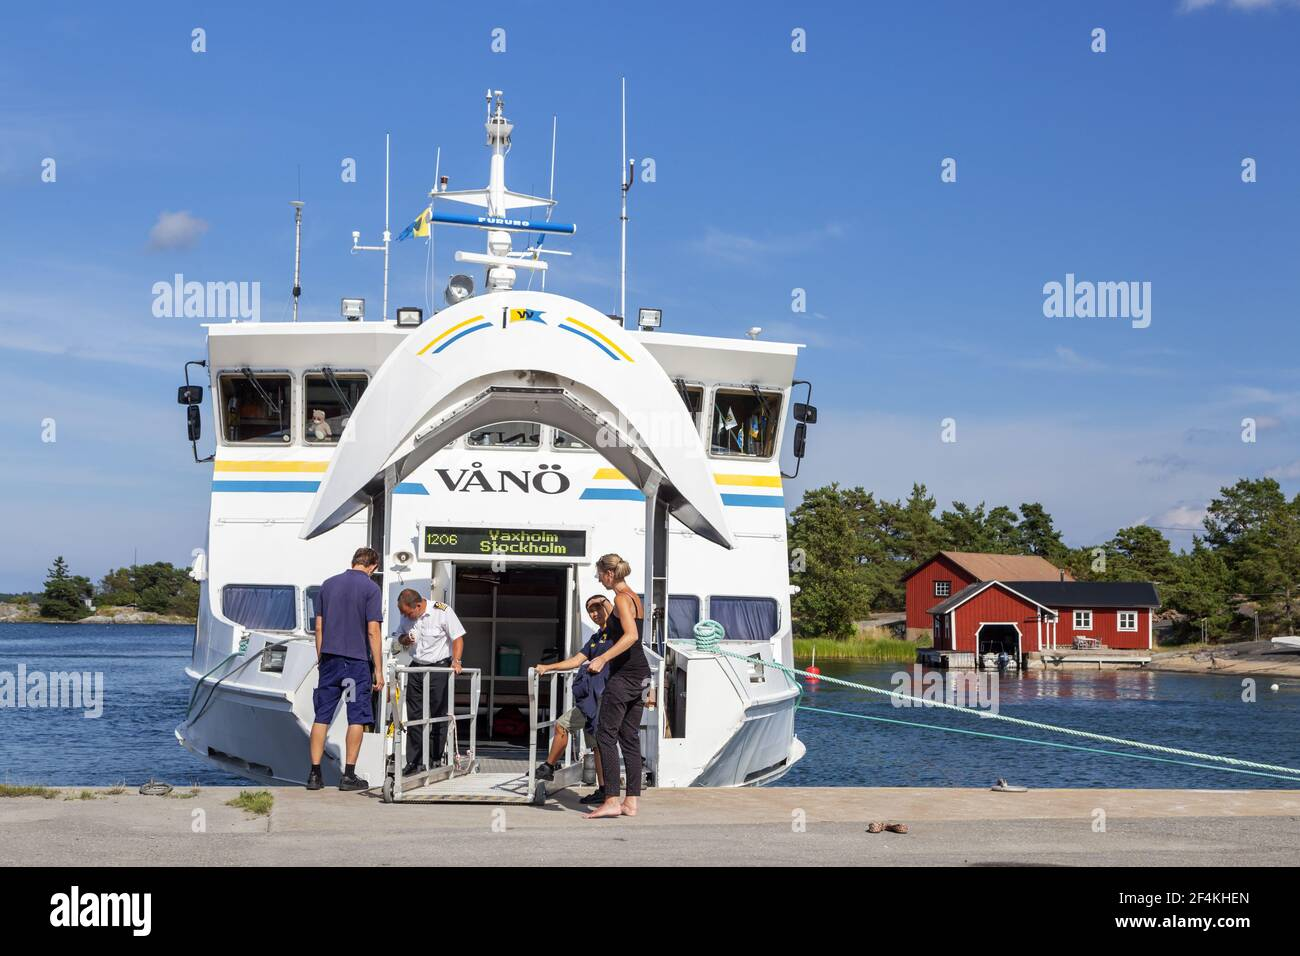 geography / travel, Sweden, Stockholm laen, Stockholm skårgården, ferry boat Vånoe in the harbour Lang, Additional-Rights-Clearance-Info-Not-Available Stock Photo